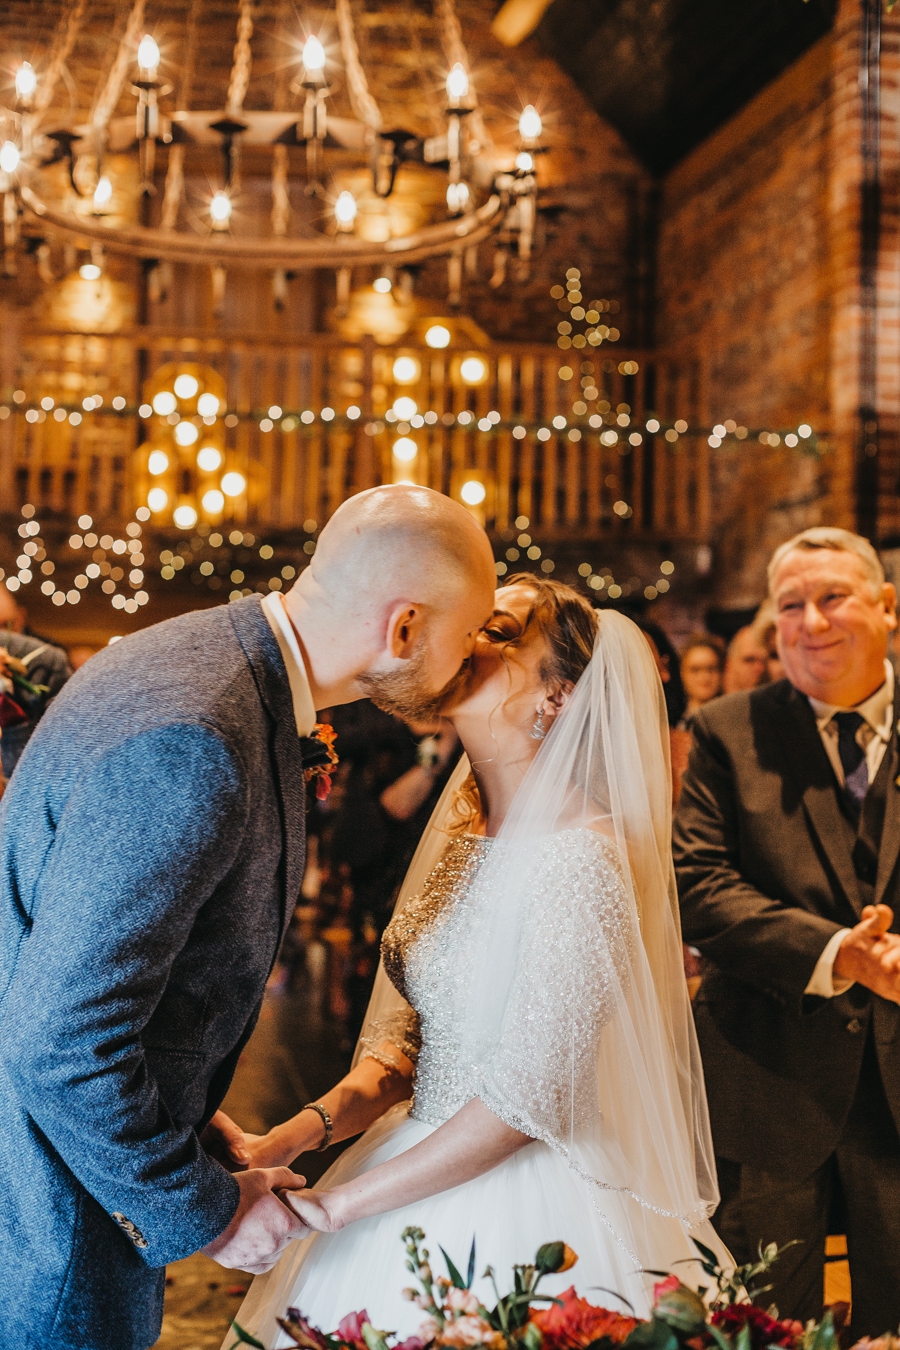 Sophie & Chris's beautiful English wedding at Curradine Barns, with Nellie Photography (25)